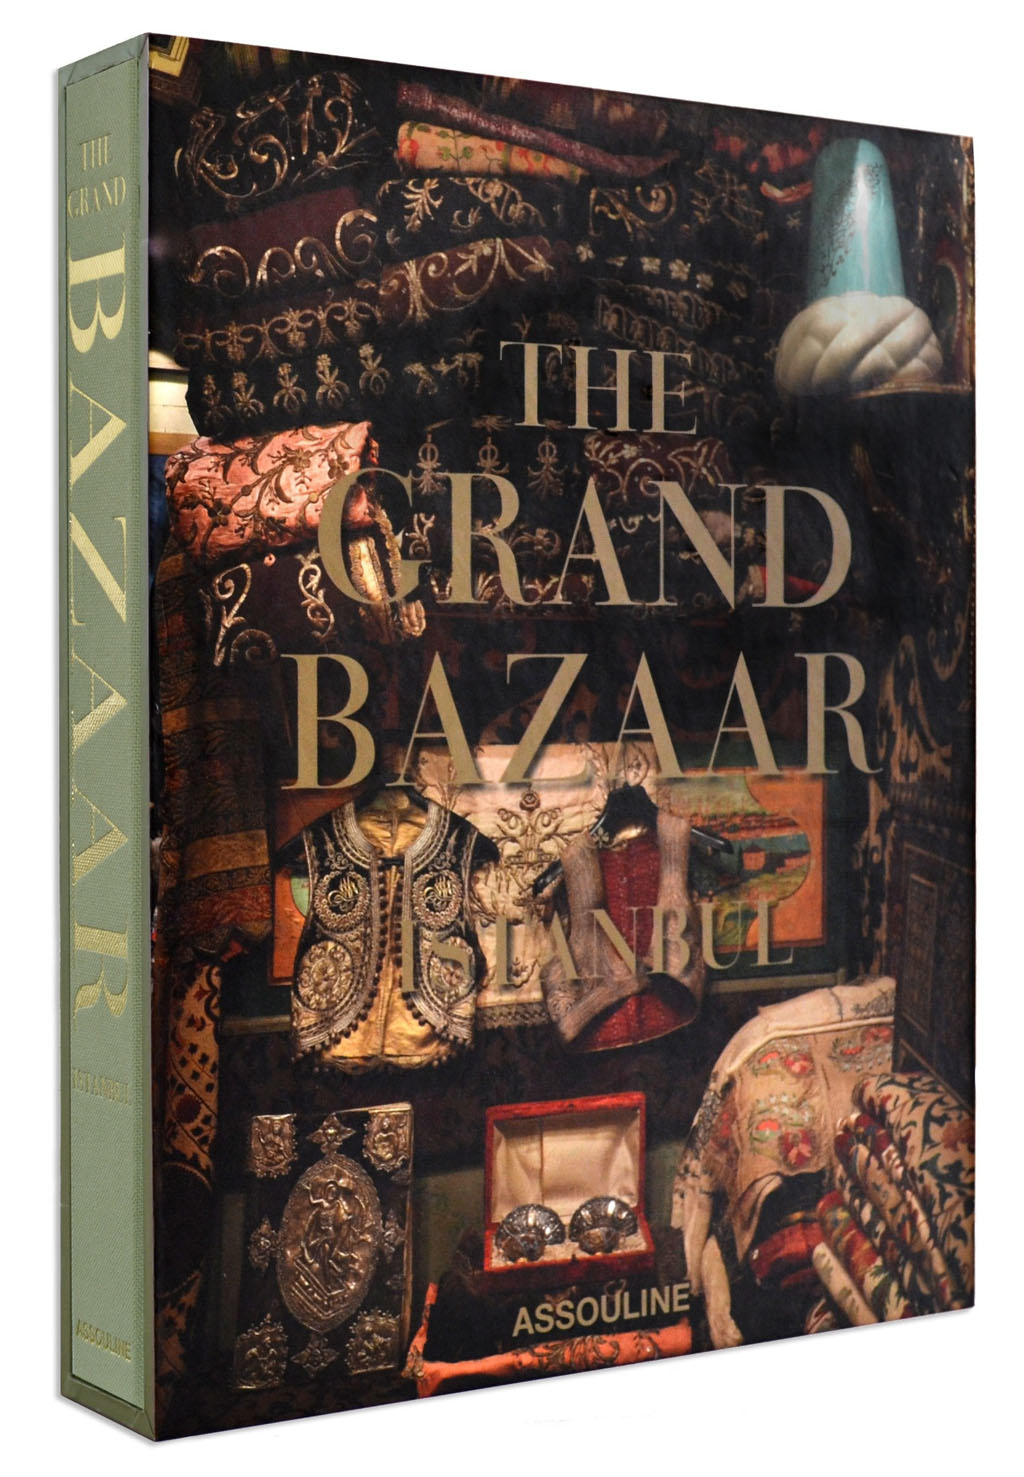 <h1>THE GRAND BAZAAR</h1><h2>BY SERDAR GÜLGÜN</h2>